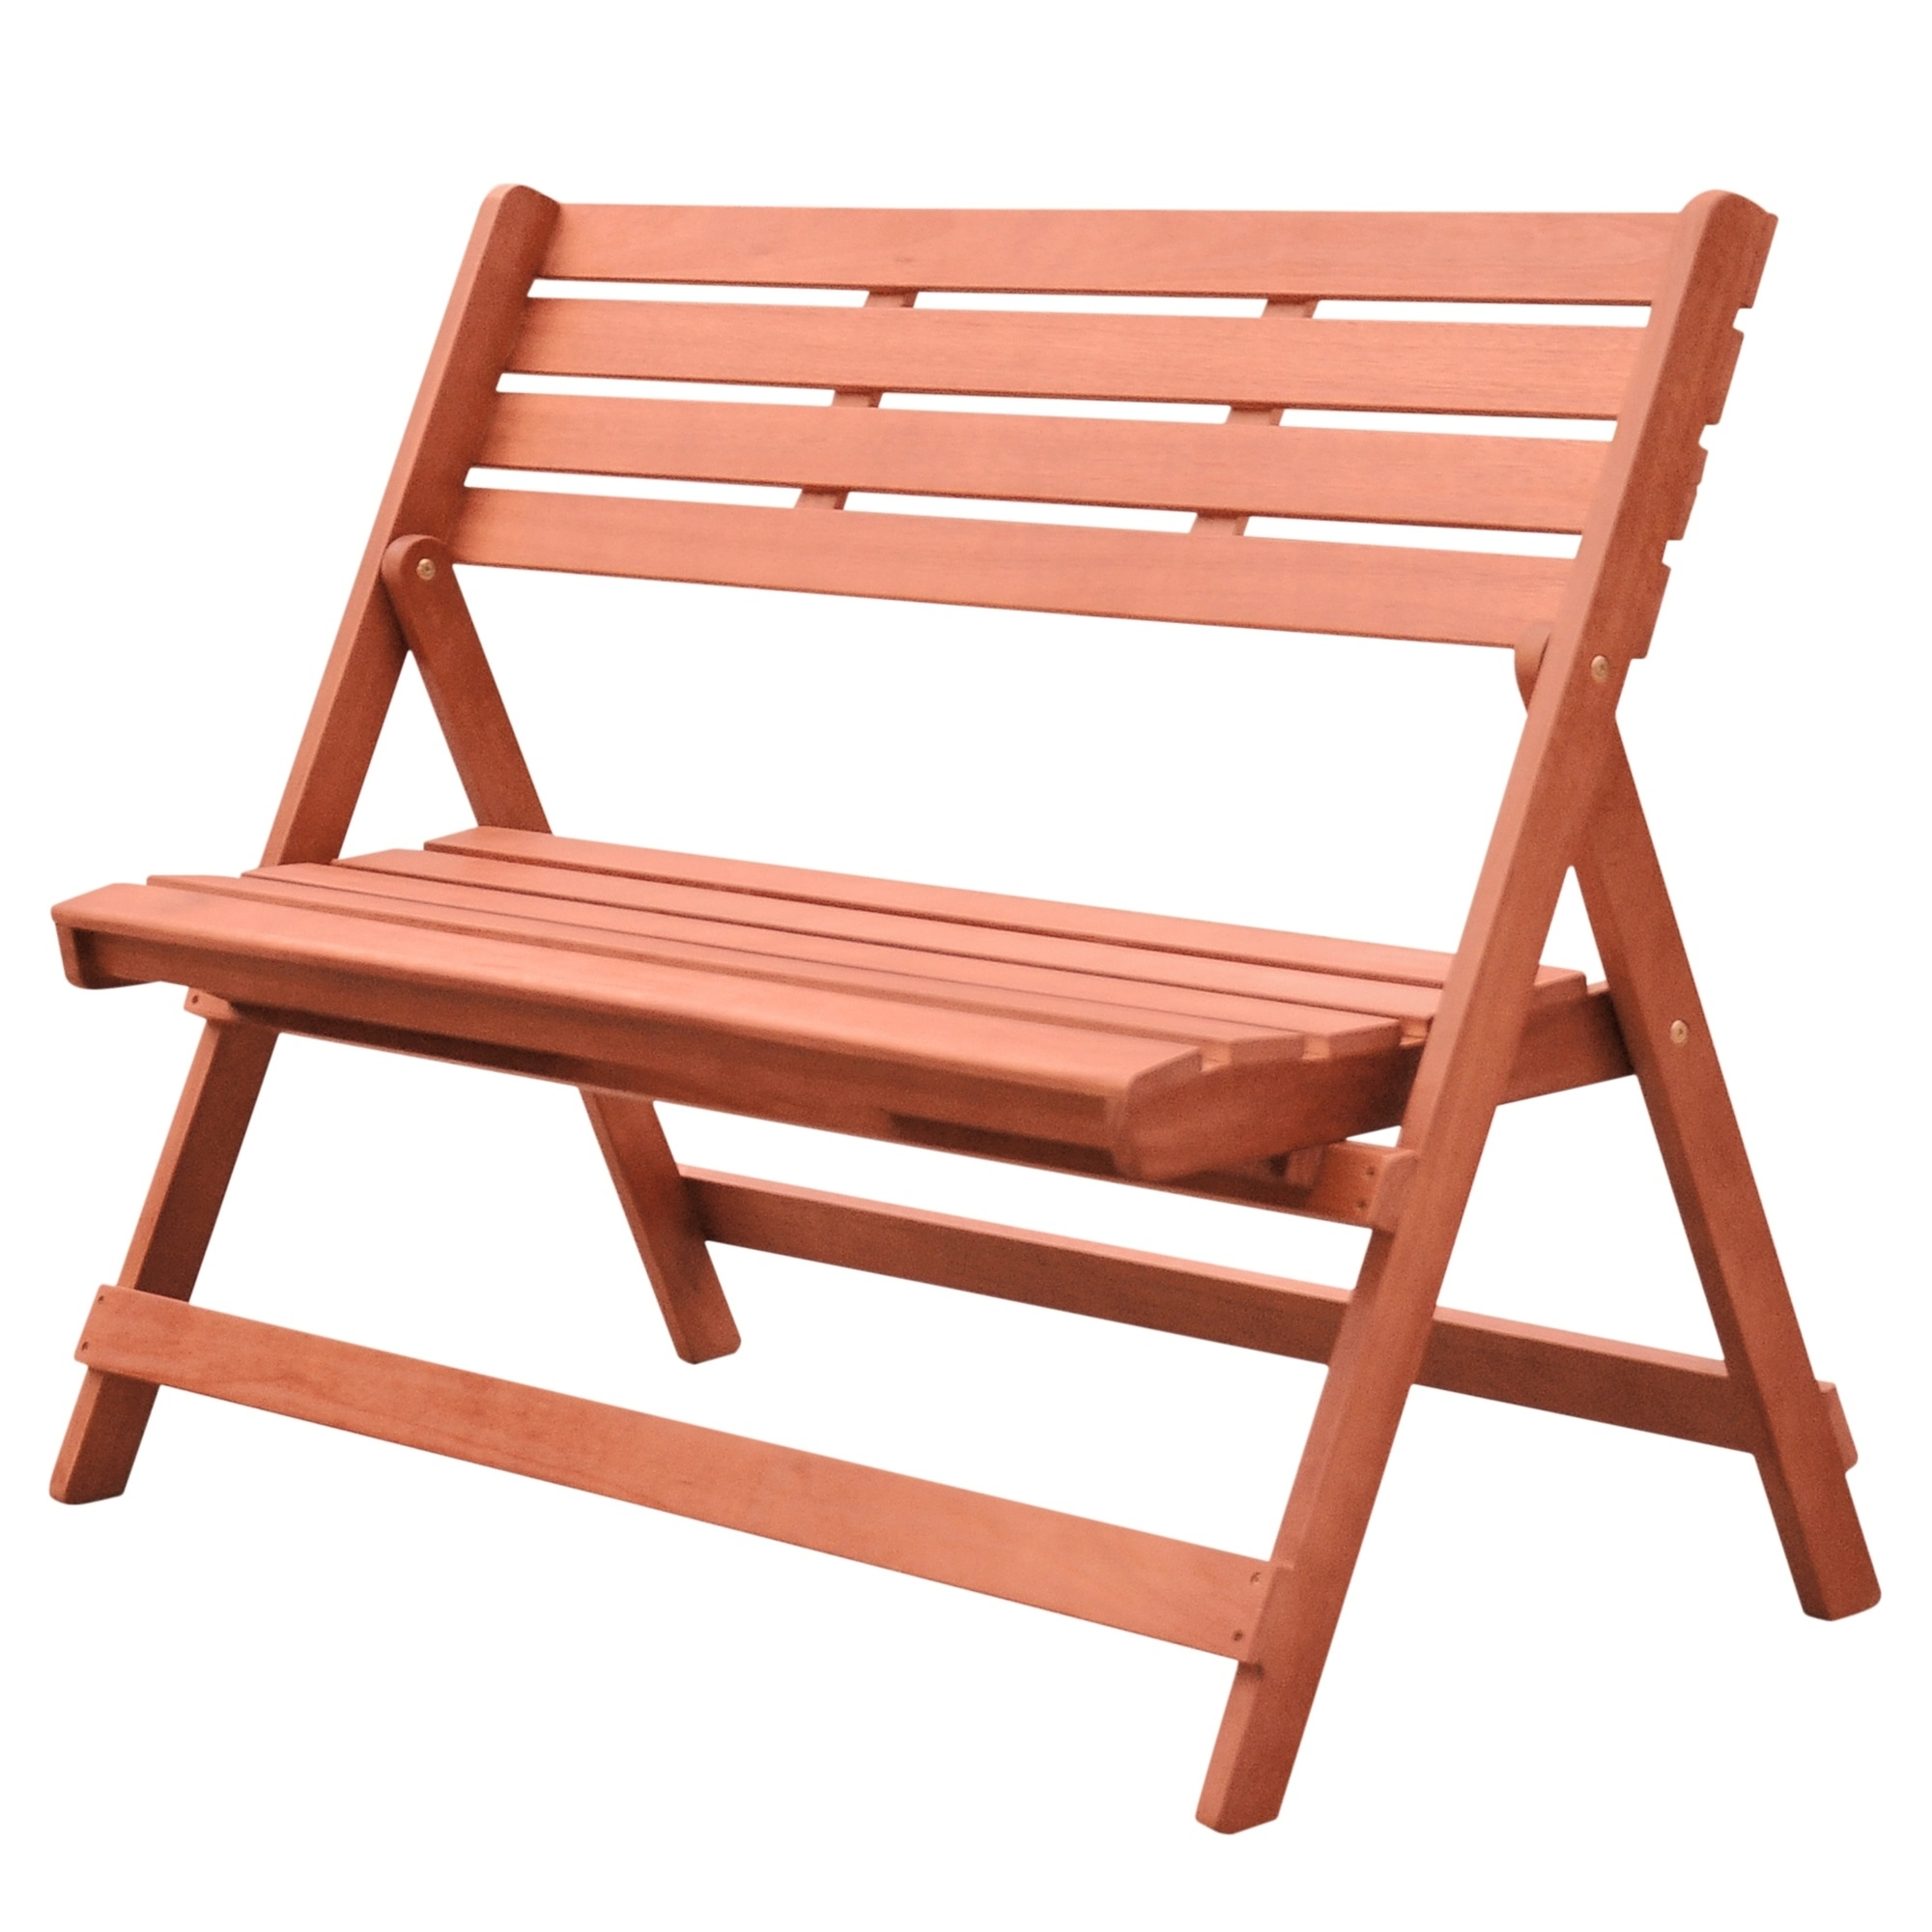 Christie and Charlie's Outdoor Patio 4-foot Wood Folding Bench